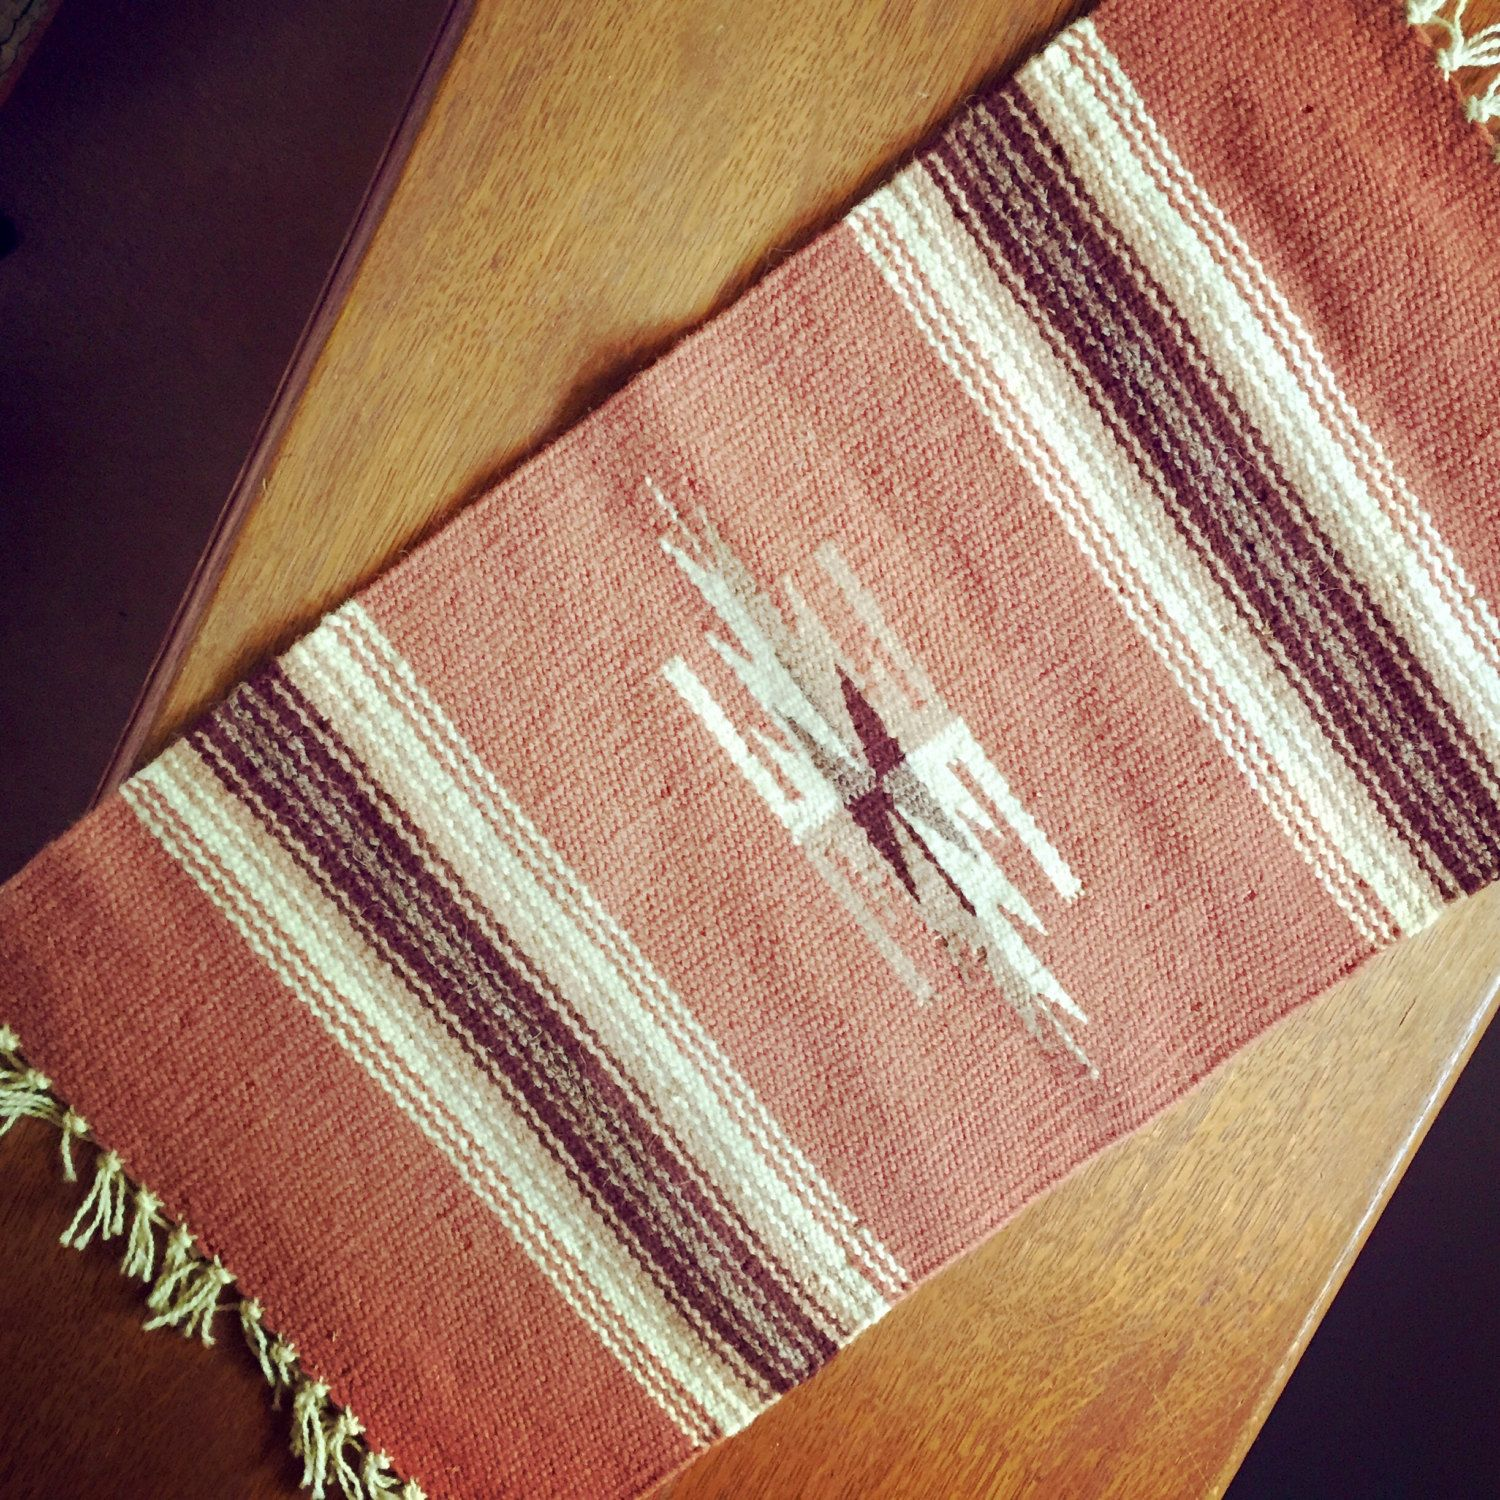 Navajo Woven Table Runner Wool Native American Textiles Tribal Decor Mexican Rugs Vintage Southwestern By Rushcreekvintage